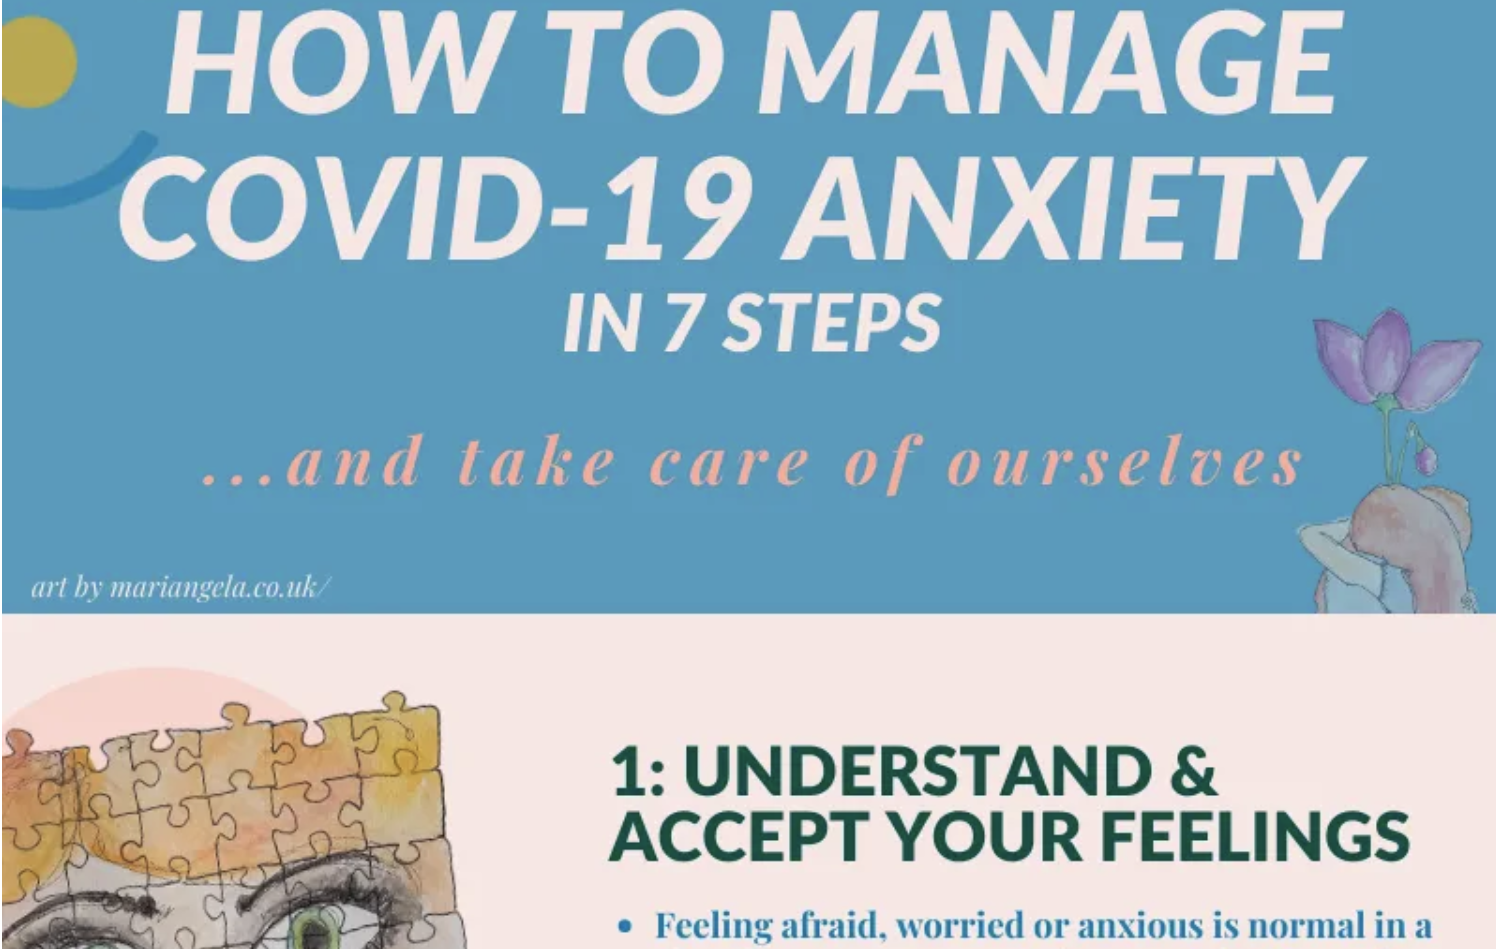 How to Manage Covid-19 Anxiety in 7 steps